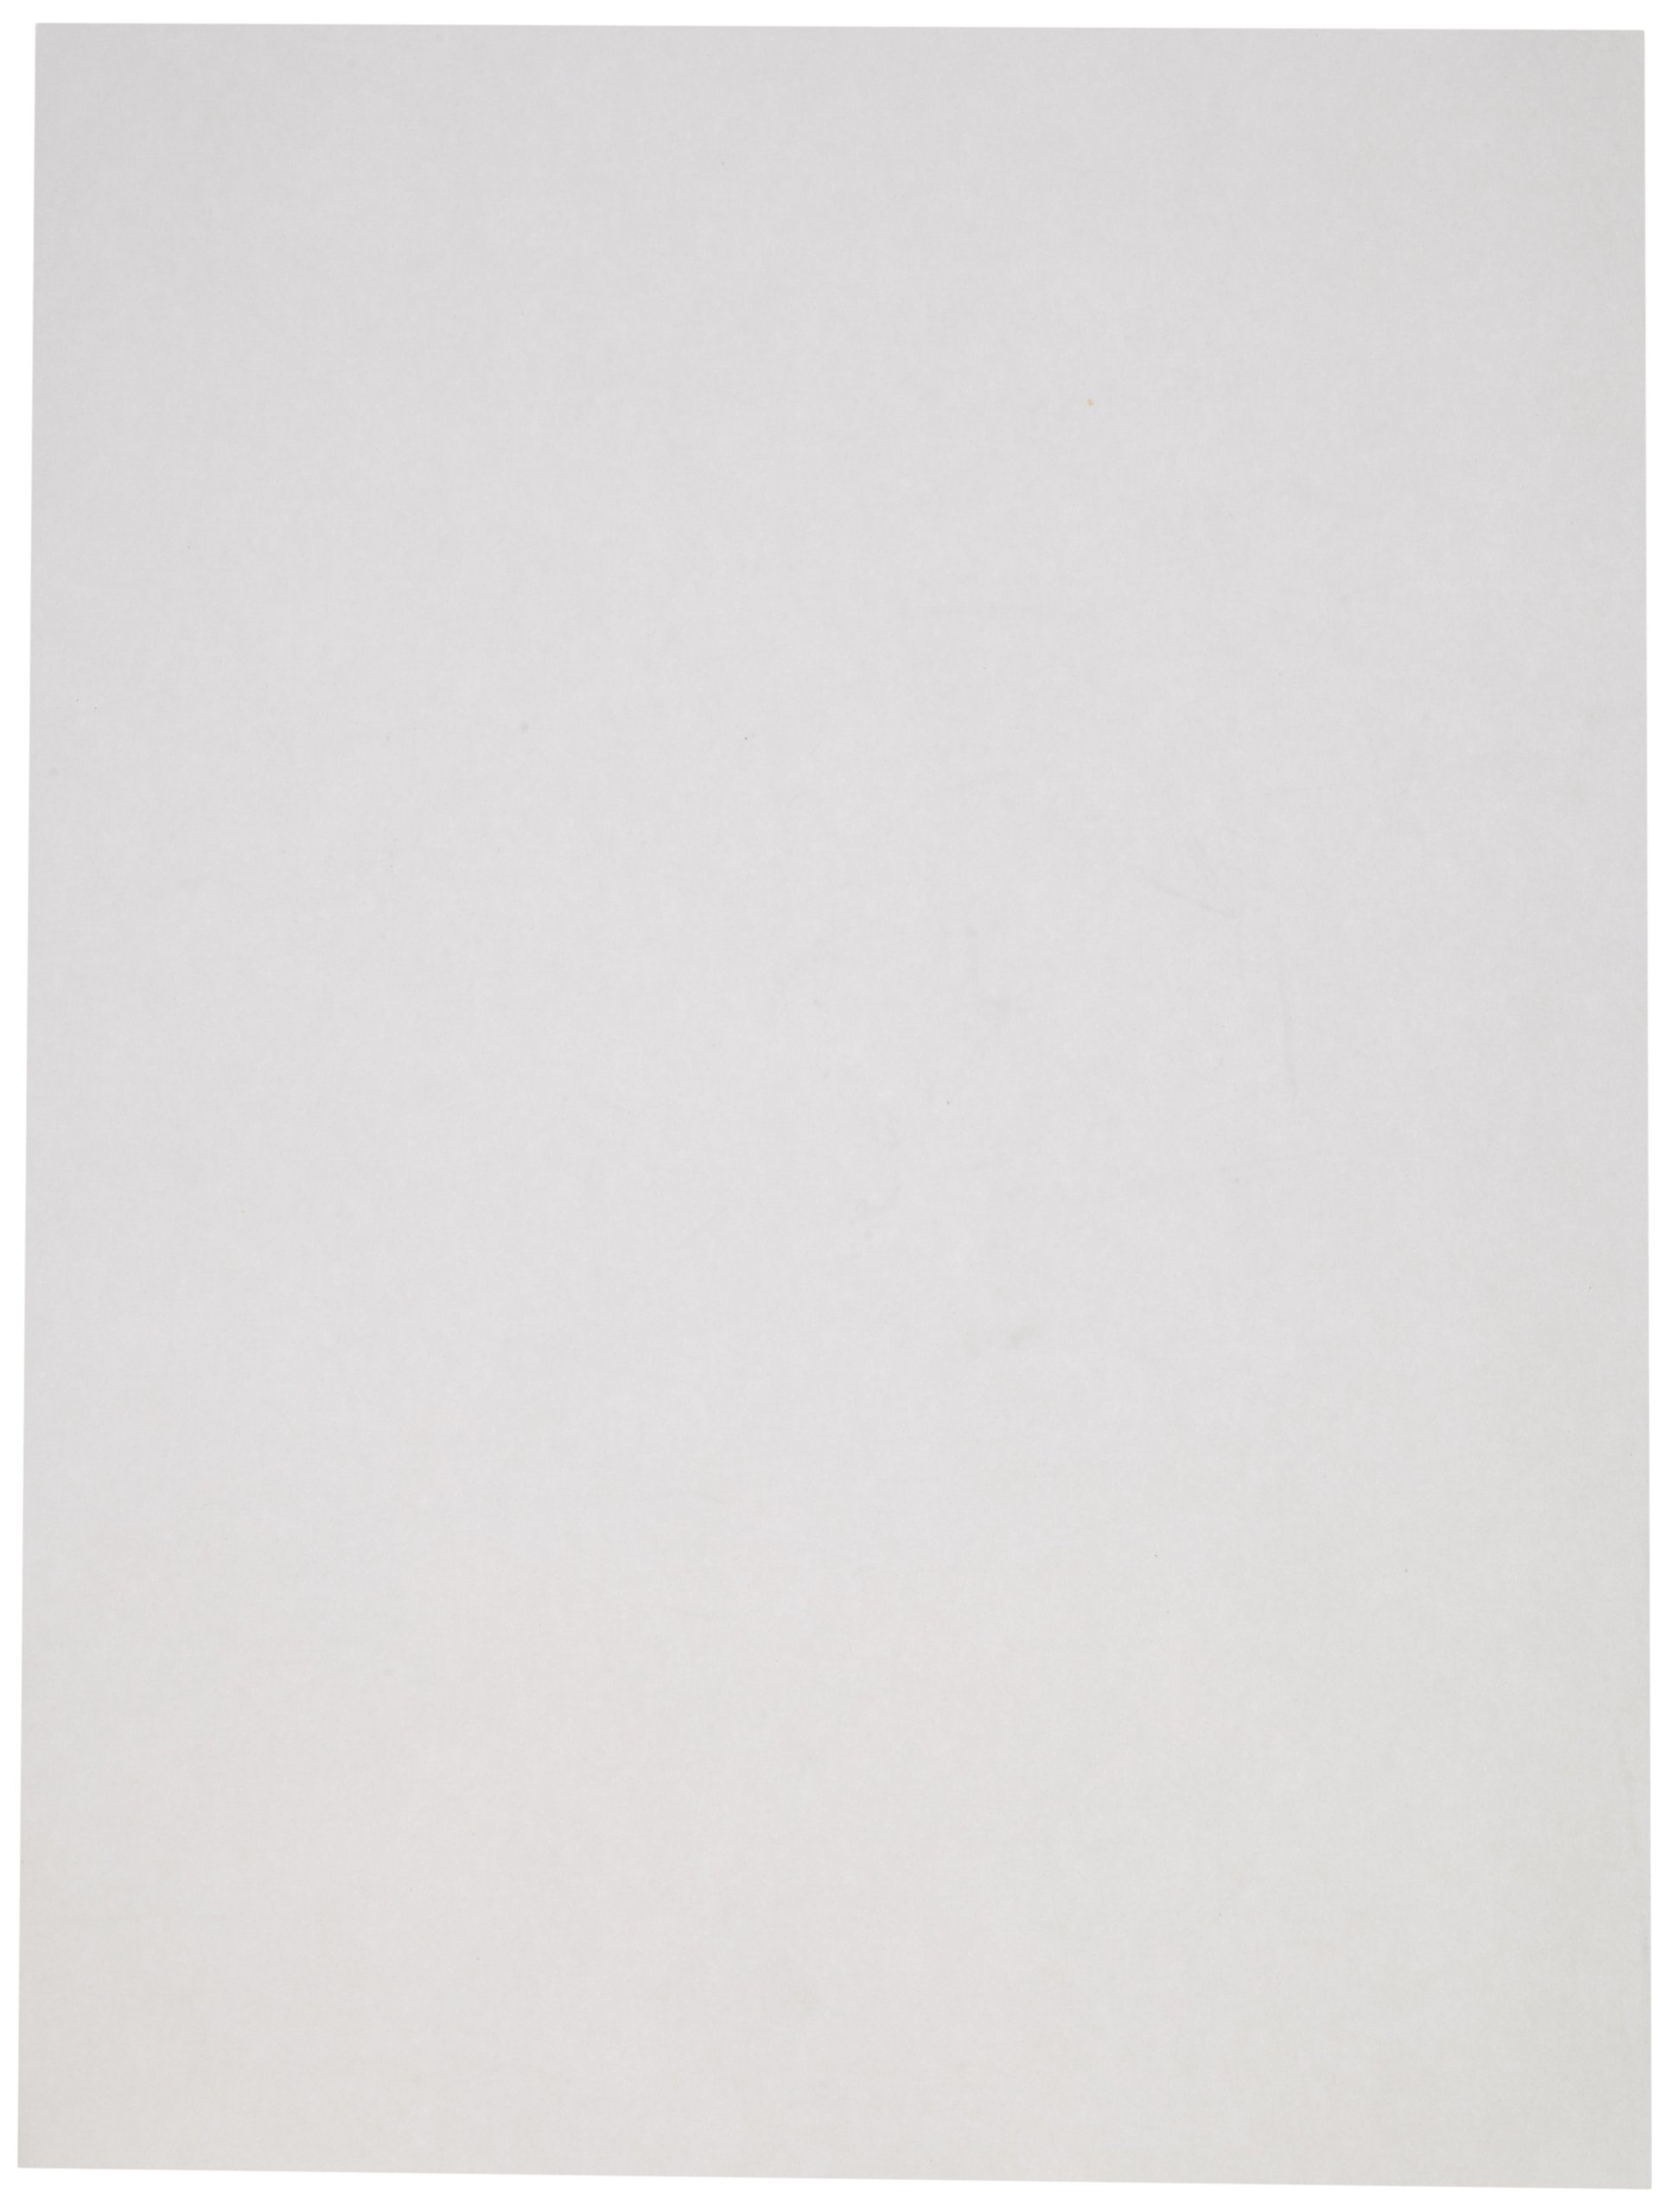 Sax Sulphite Drawing Paper, 60 lbs, 9 x 12 Inches, Extra-White